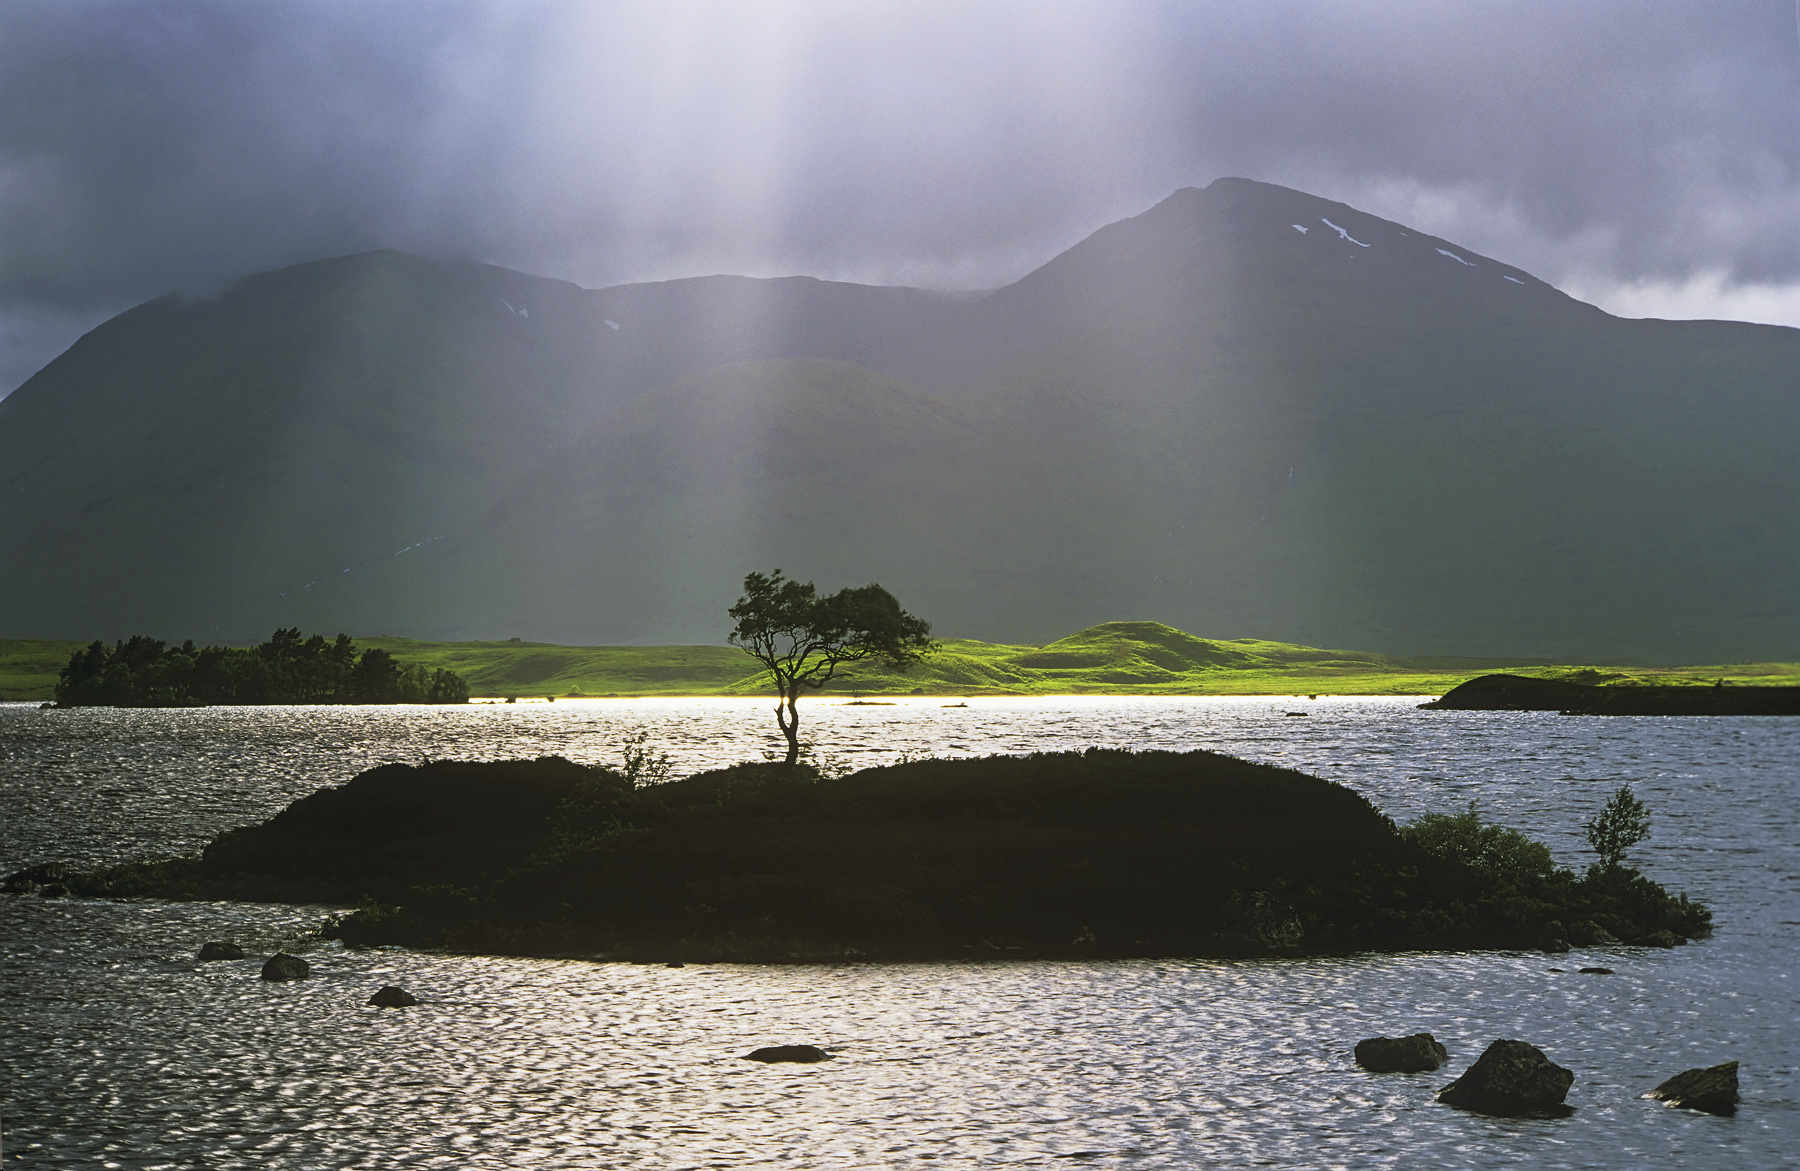 Crespecular rays shine from around the edges of clouds and I hoped I would get the chance to photograph the little island tree...